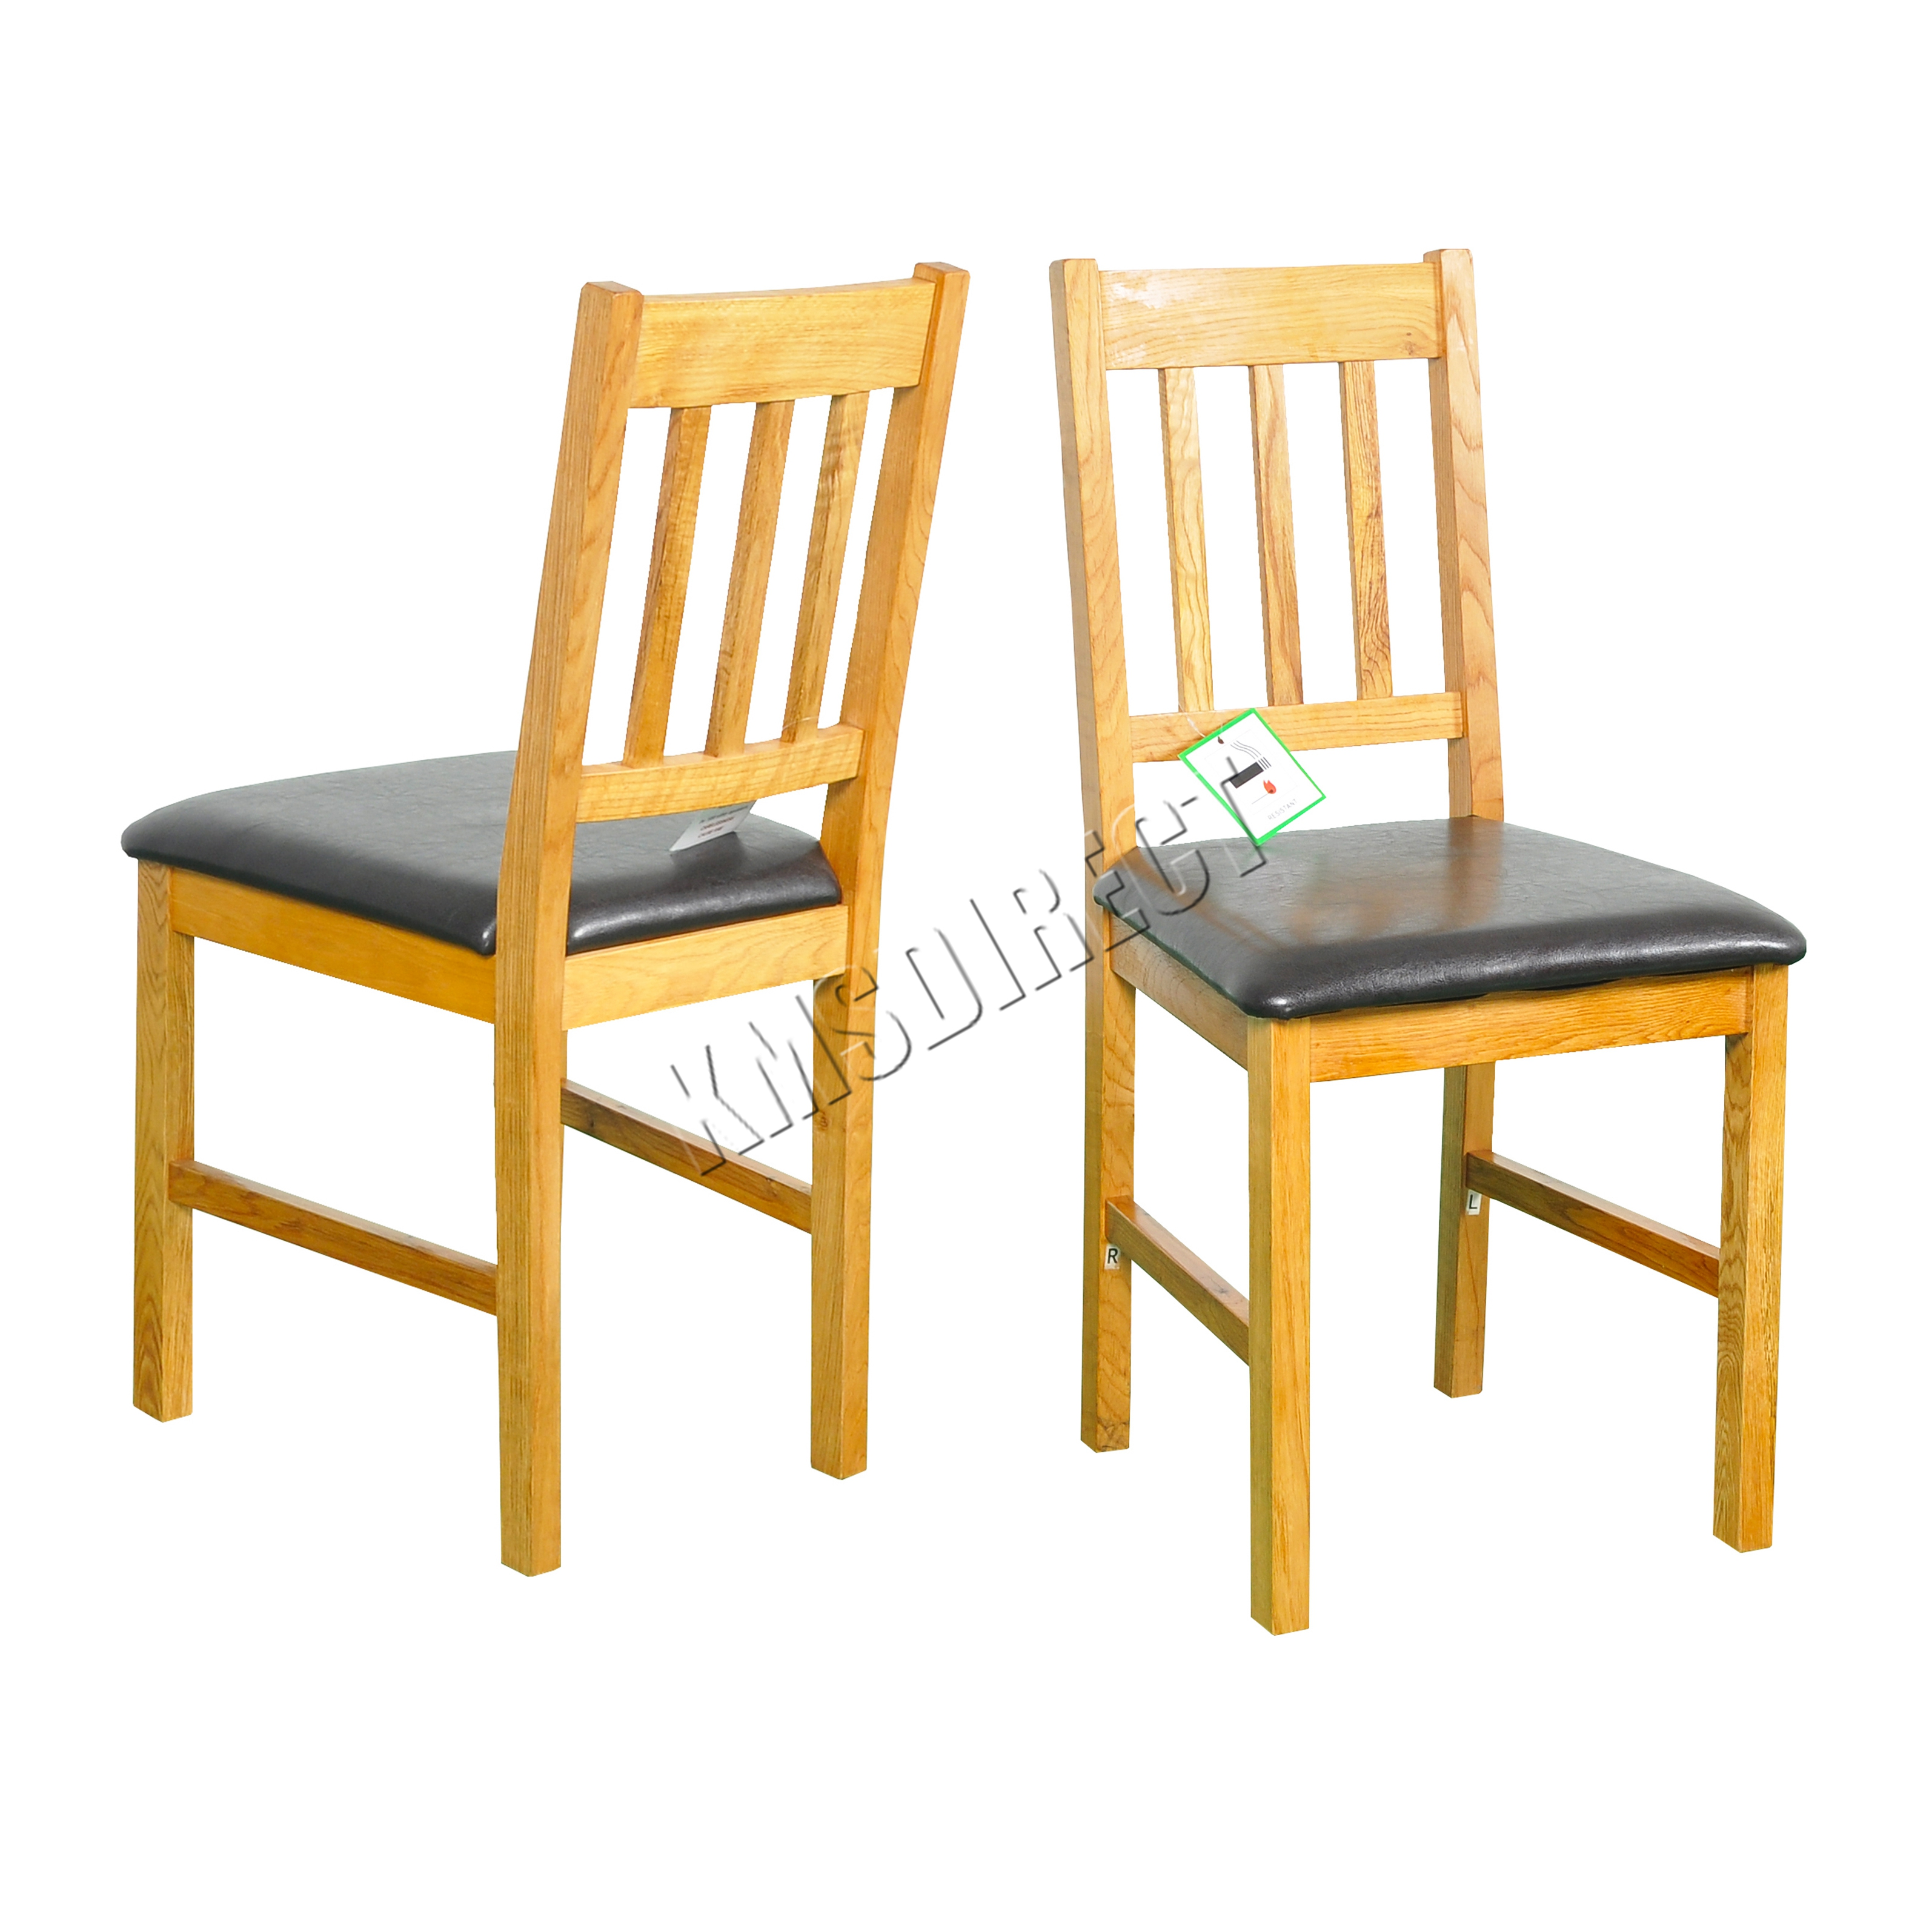 35 unfinished kitchen chairs Wonderful image of 2X Solid Wooden Oak Dining Chair Set With PU Kitchen Furniture FH OF01